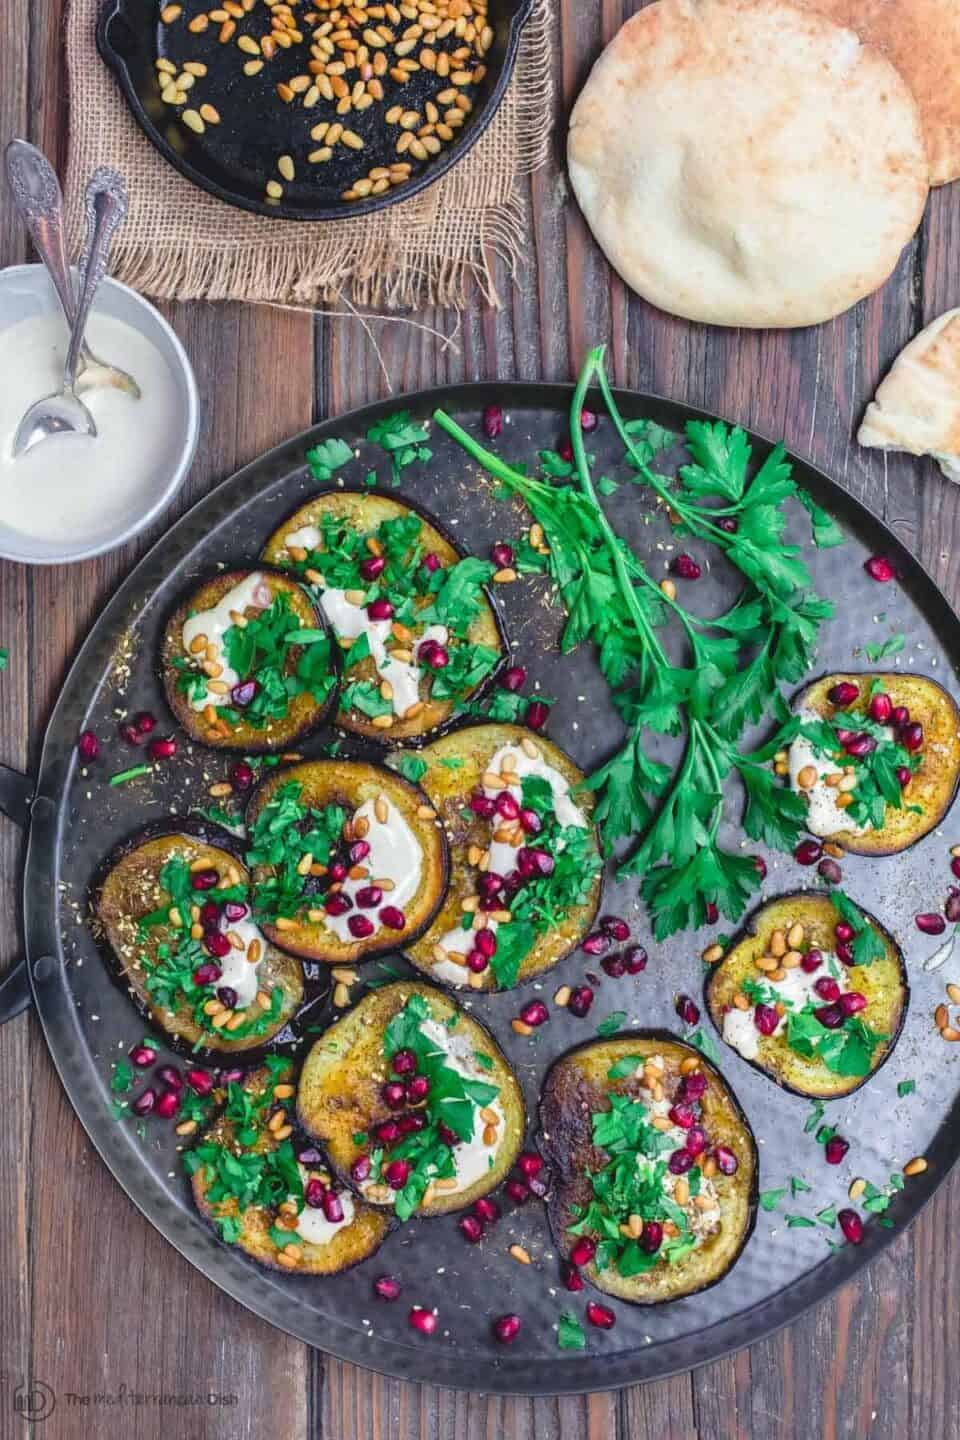 29 Eggplant Recipes to Make this Week